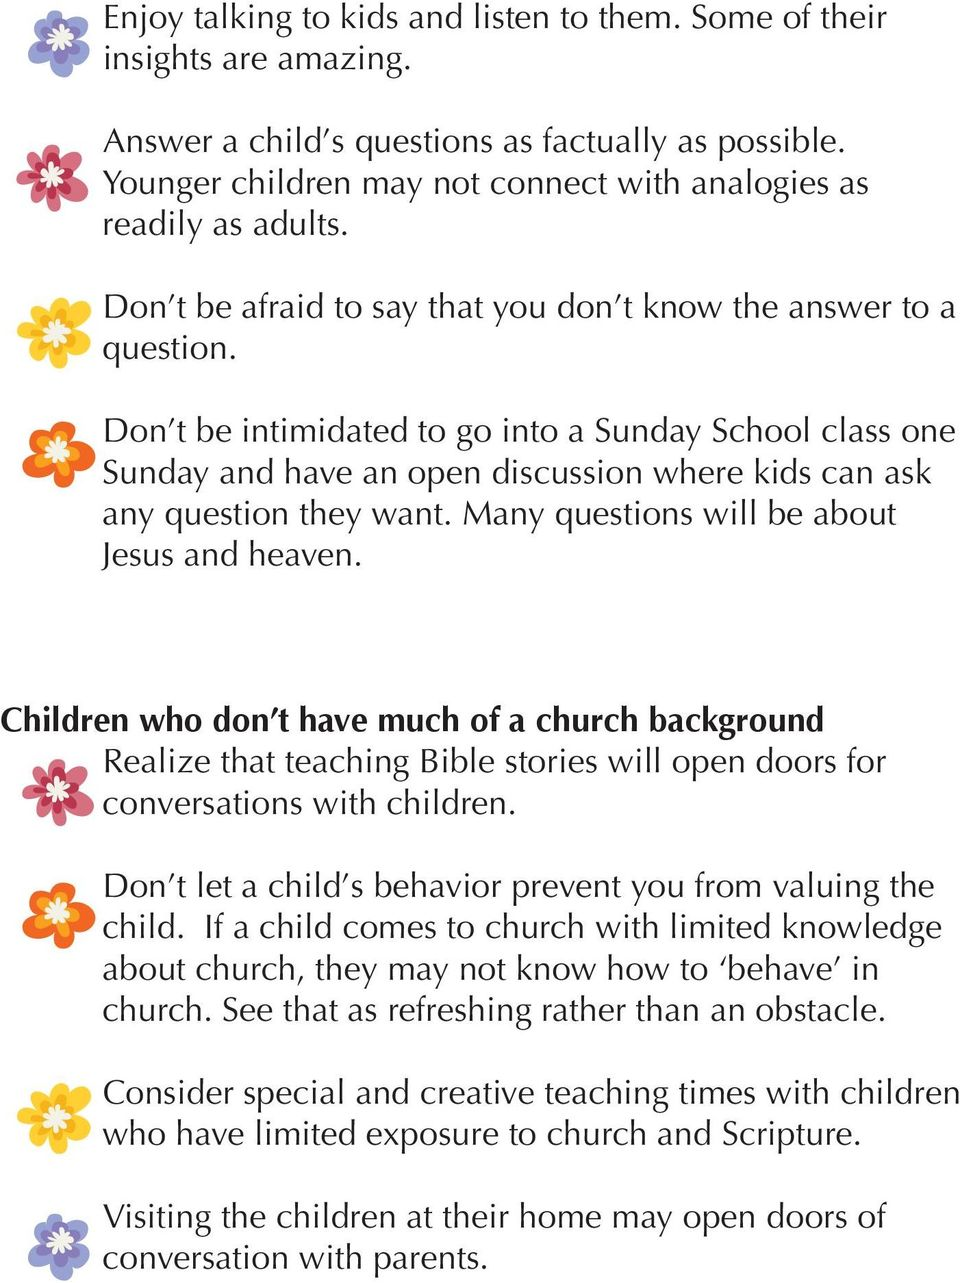 Don t be intimidated to go into a Sunday School class one Sunday and have an open discussion where kids can ask any question they want. Many questions will be about Jesus and heaven.